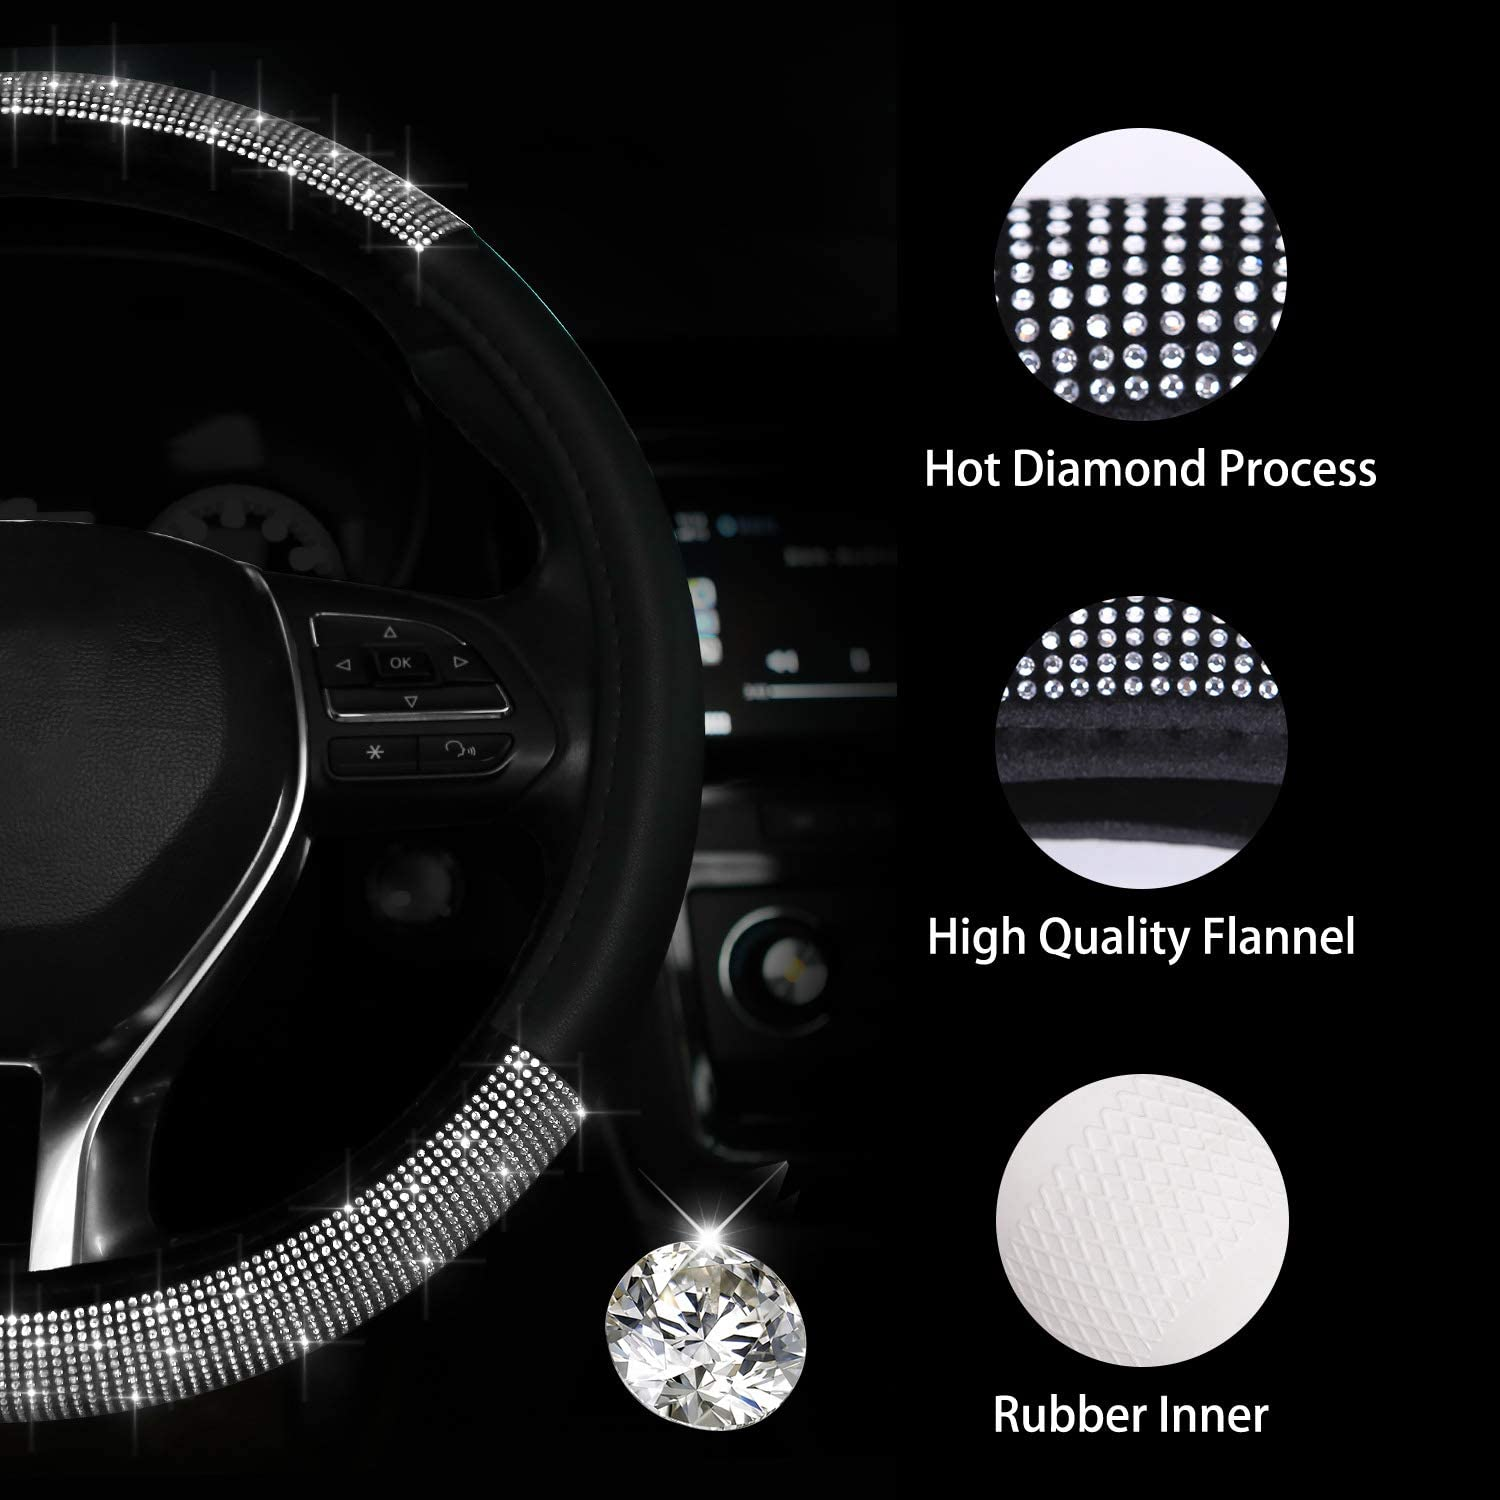 Black Universal Fit 15 Inch Anti-Slip Wheel Protector for Women Girls Bling Bling Crystal Rhinestone Rainbow Steering Cover Meserparts Diamond Steering Wheel Cover